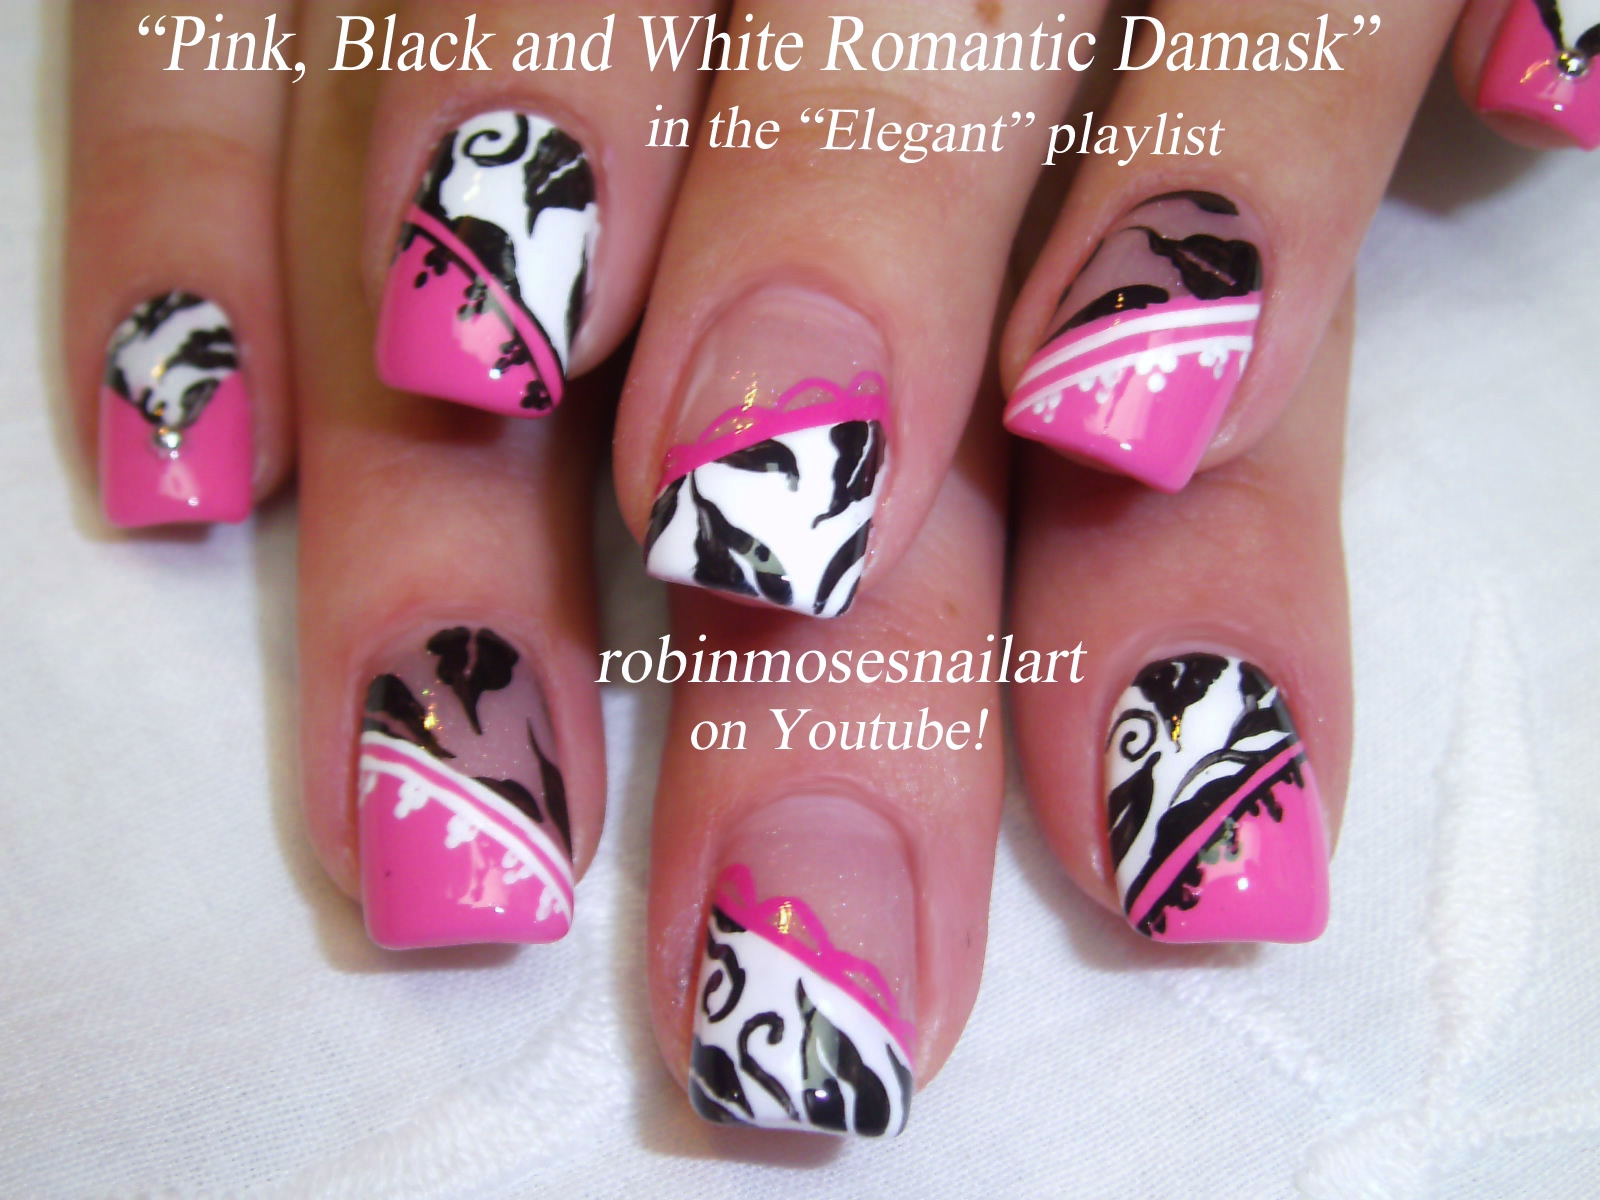 Robin moses nail art damask nail art pink black damask pink damask nail art pink black damask pink black and white nails cutest nail art ever best nail art beautiful nail art purple nails polka dot nails prinsesfo Gallery